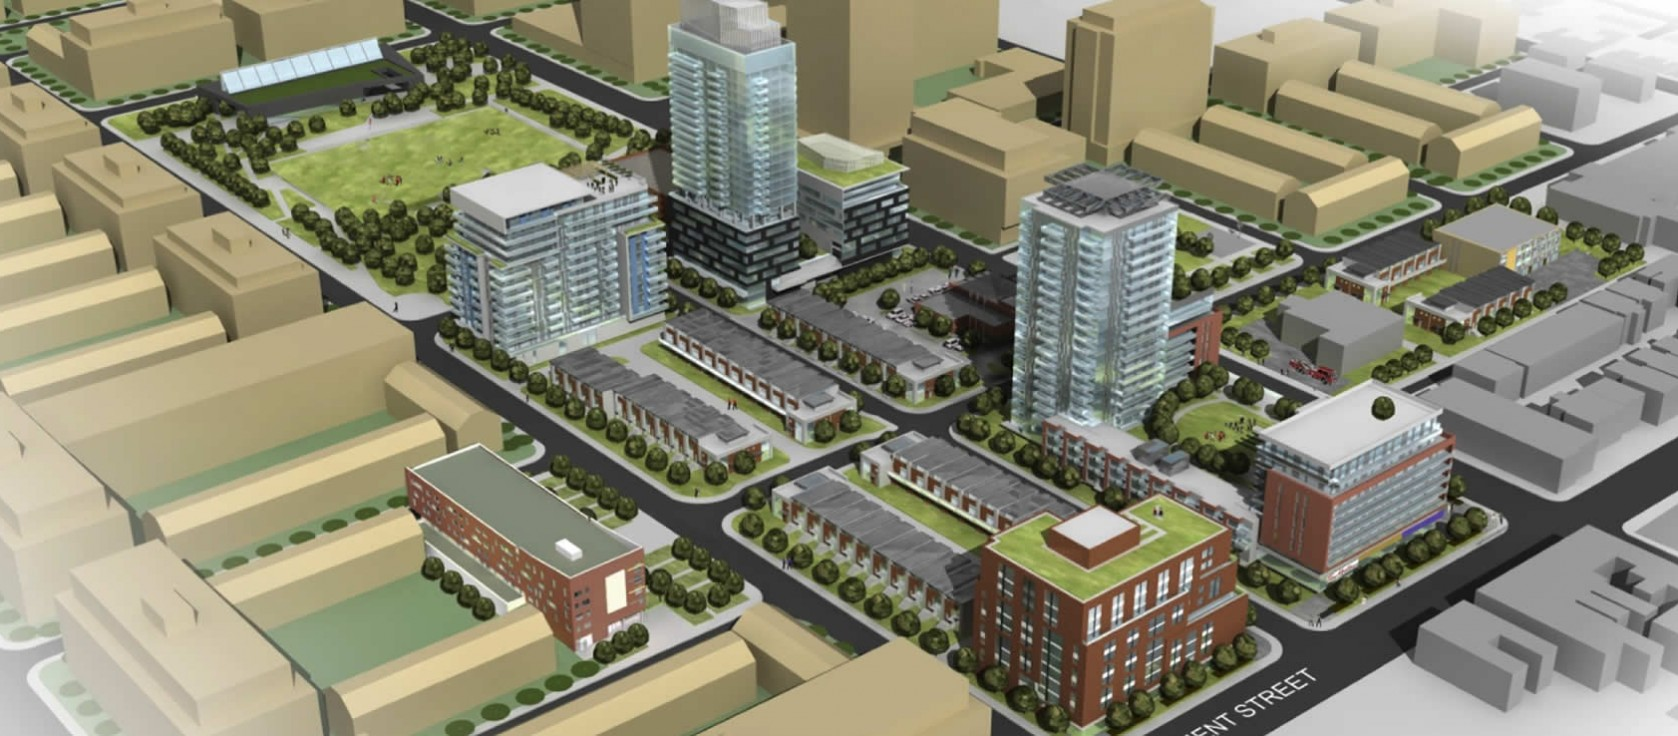 Image of Regent Park community energy system.